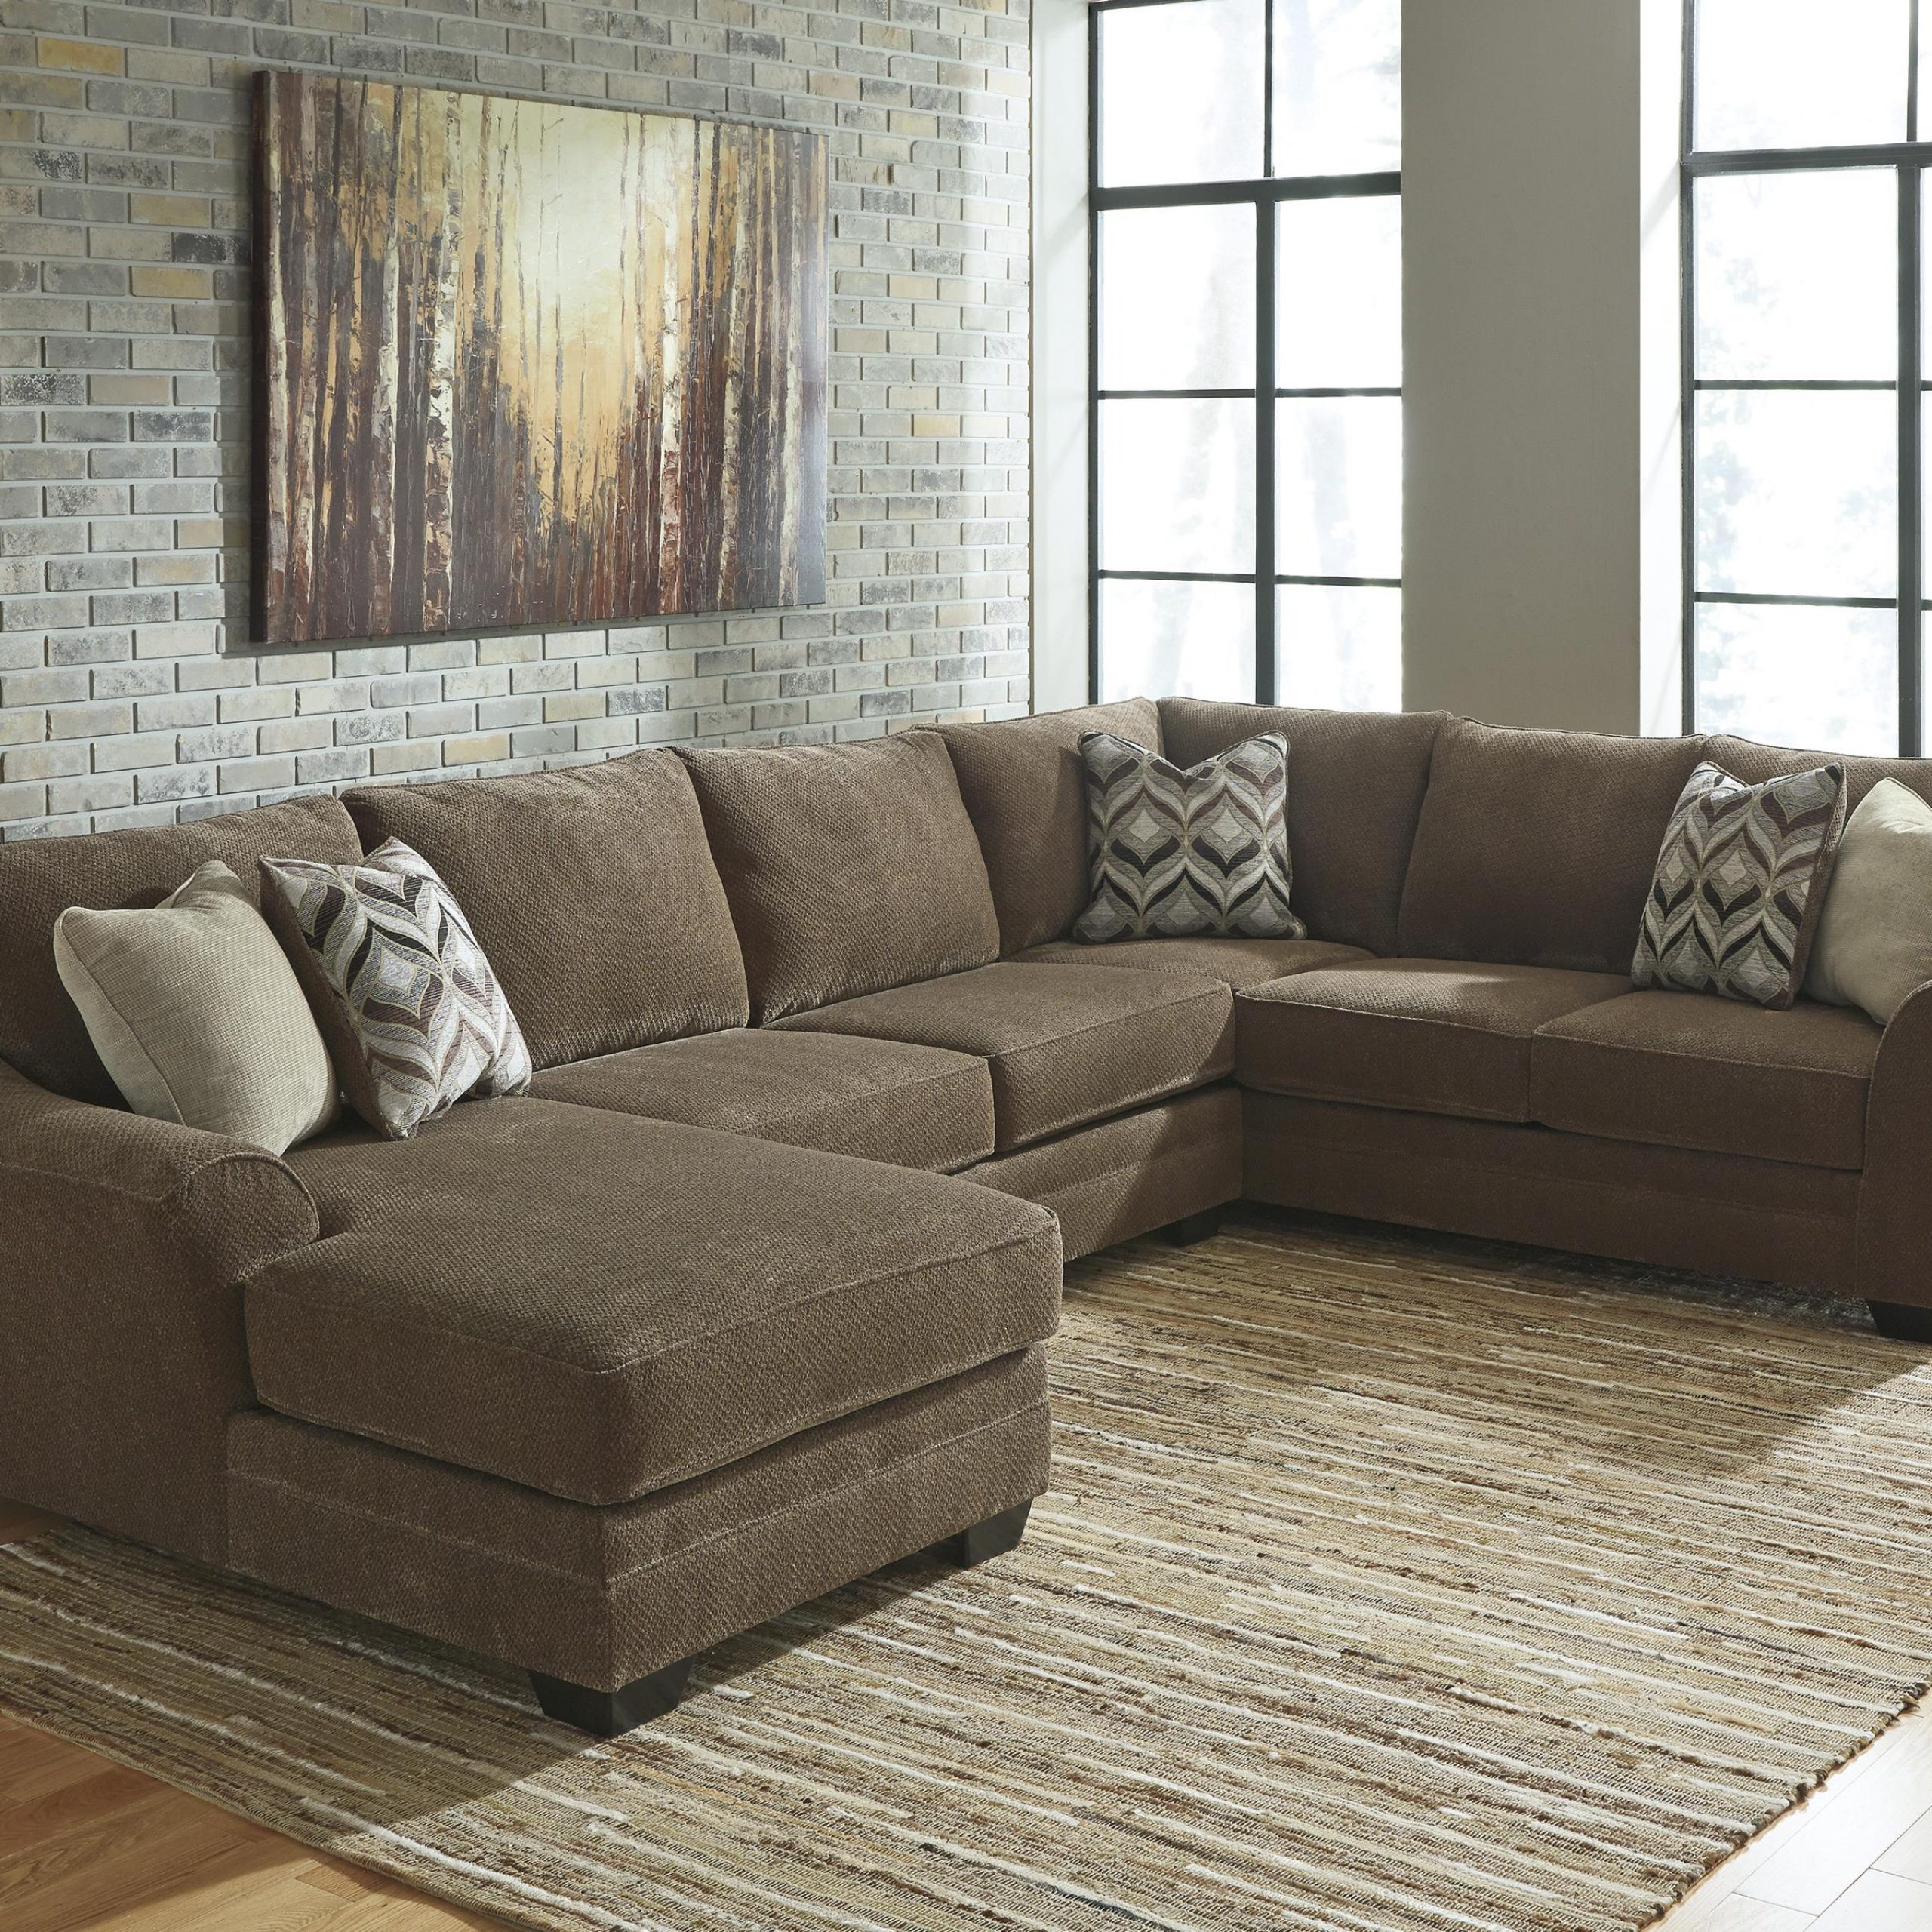 Benchcraft Justyna Contemporary 3 Piece Sectional With Pertaining To Favorite 3Pc Polyfiber Sectional Sofas (View 3 of 25)